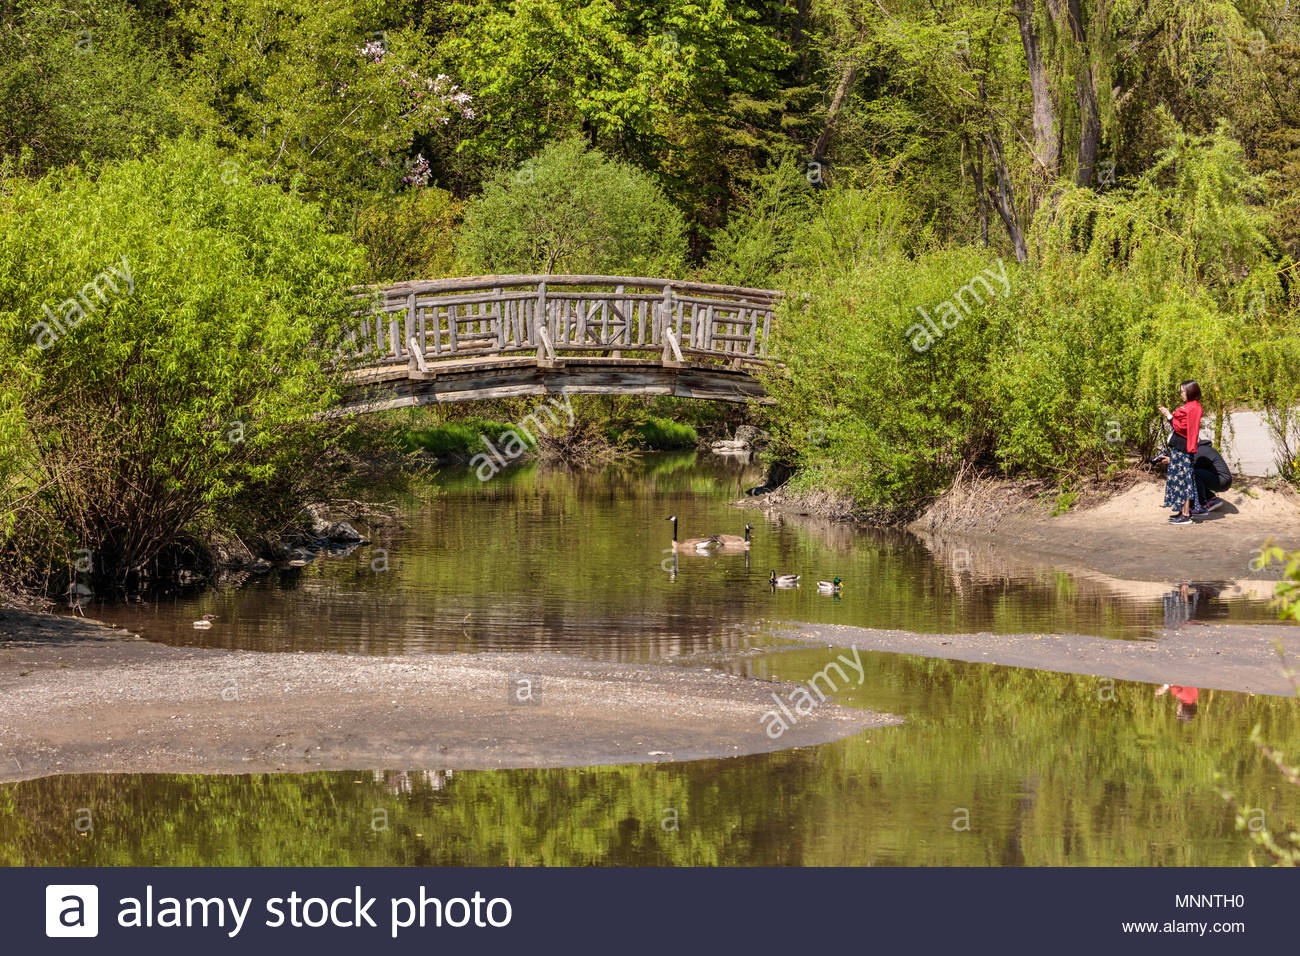 Wooden arch bridge across Wilkett Creek in Edwards Gardens a park in ...